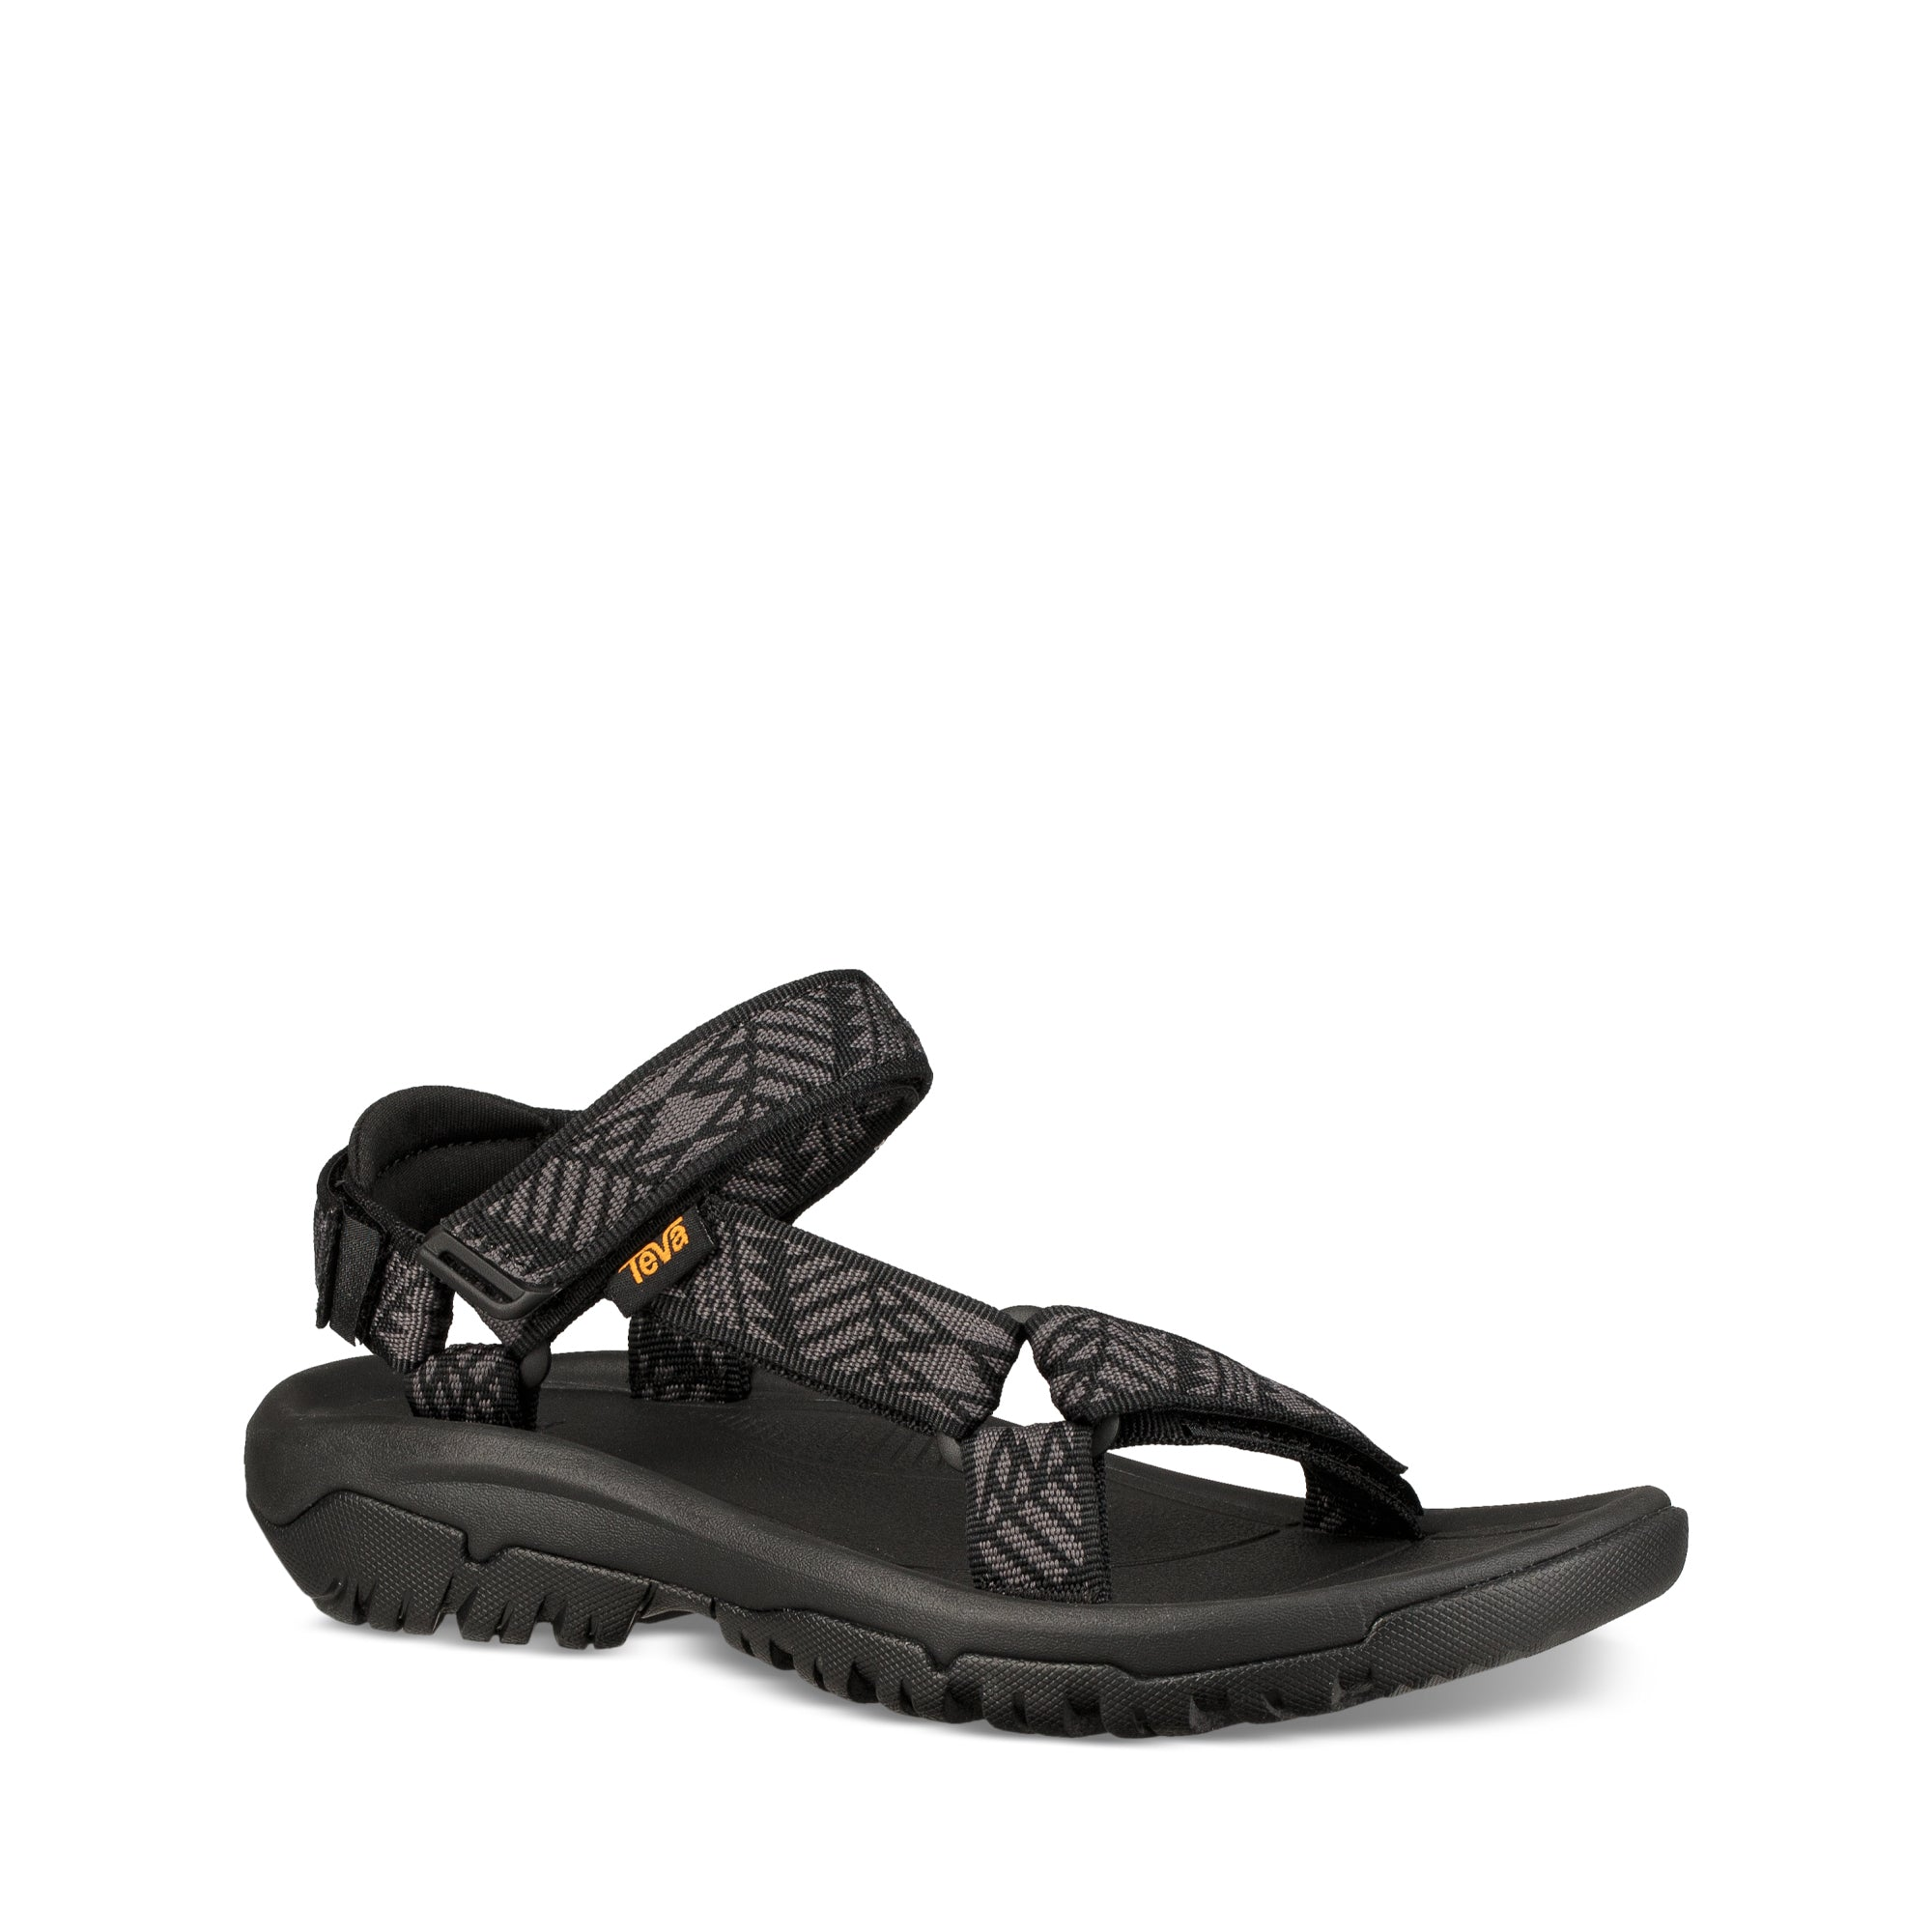 'Teva' 1019235 BNBK - Hurricane XLT2 - Black / Gray